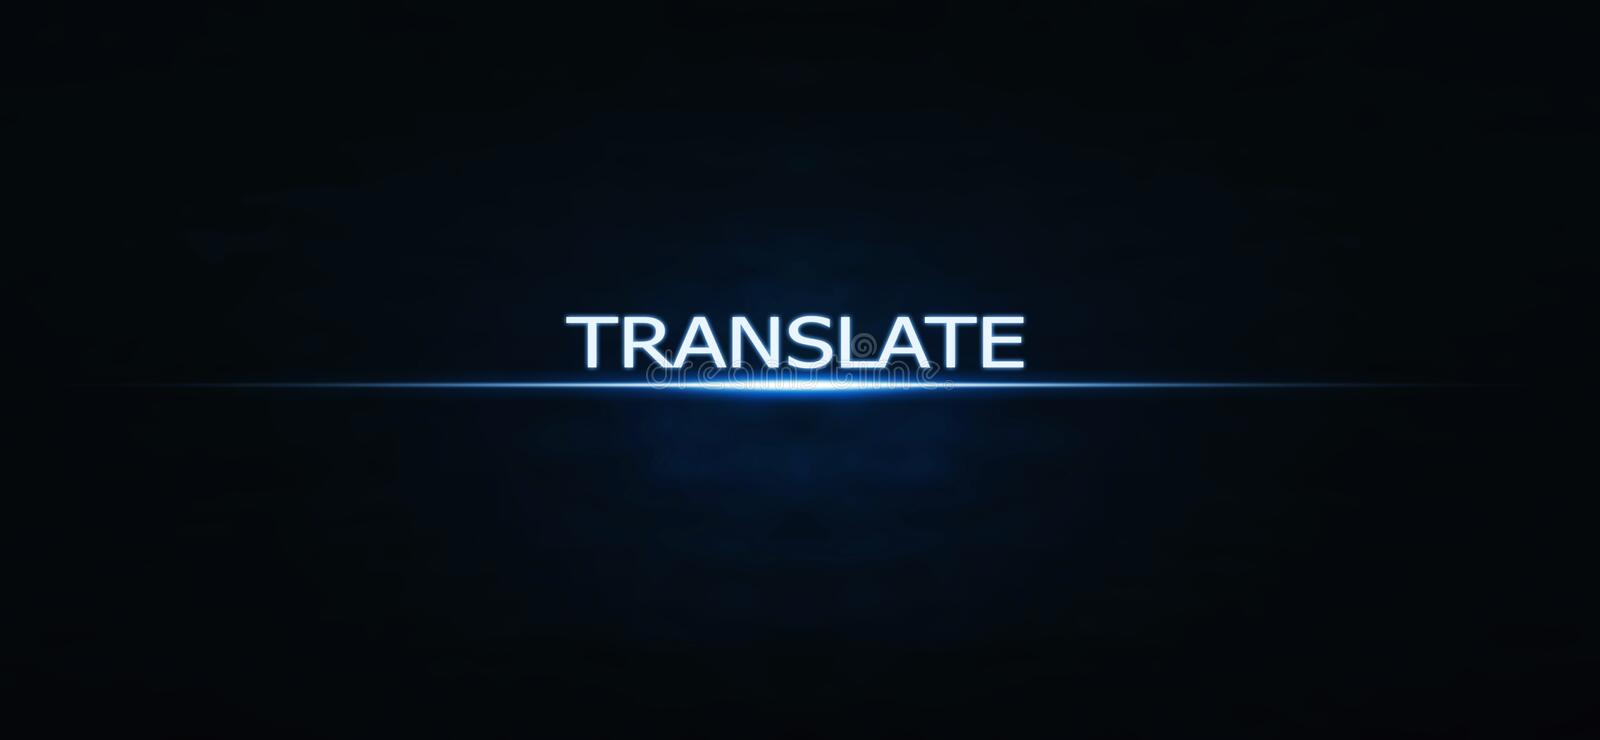 Translate word on blue light background. royalty free stock photos